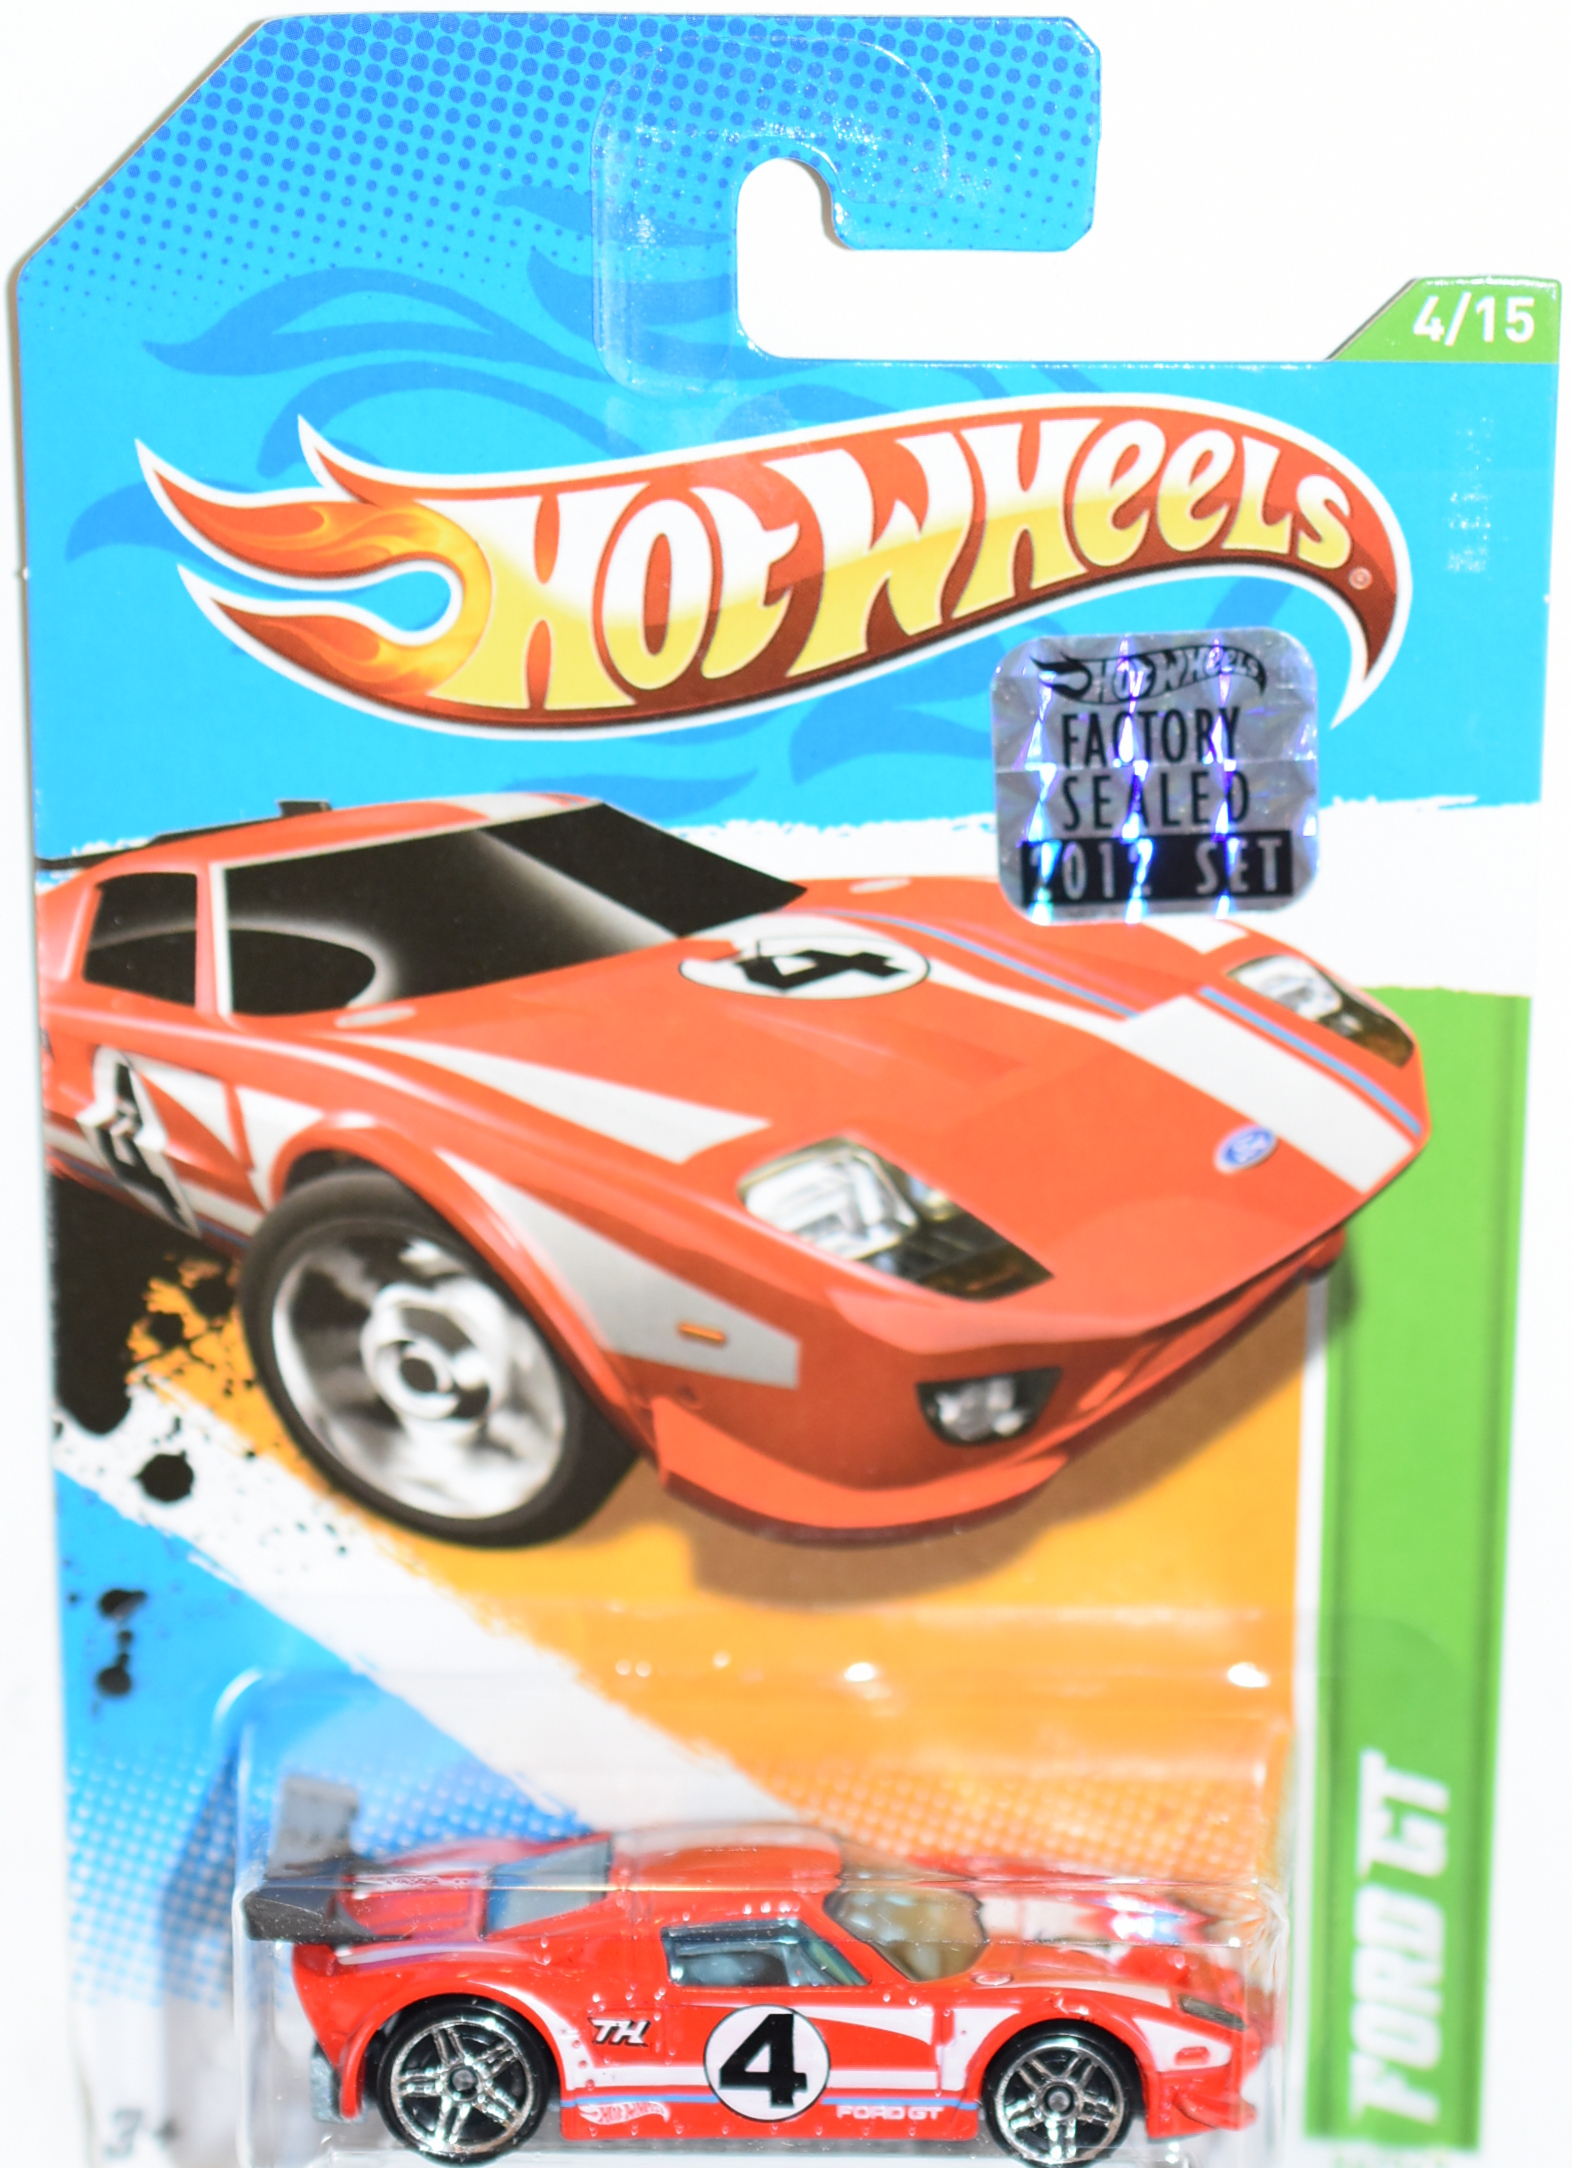 HOT WHEELS 2012 REGULAR TREASURE HUNT FORD GT FACTORY SEALED